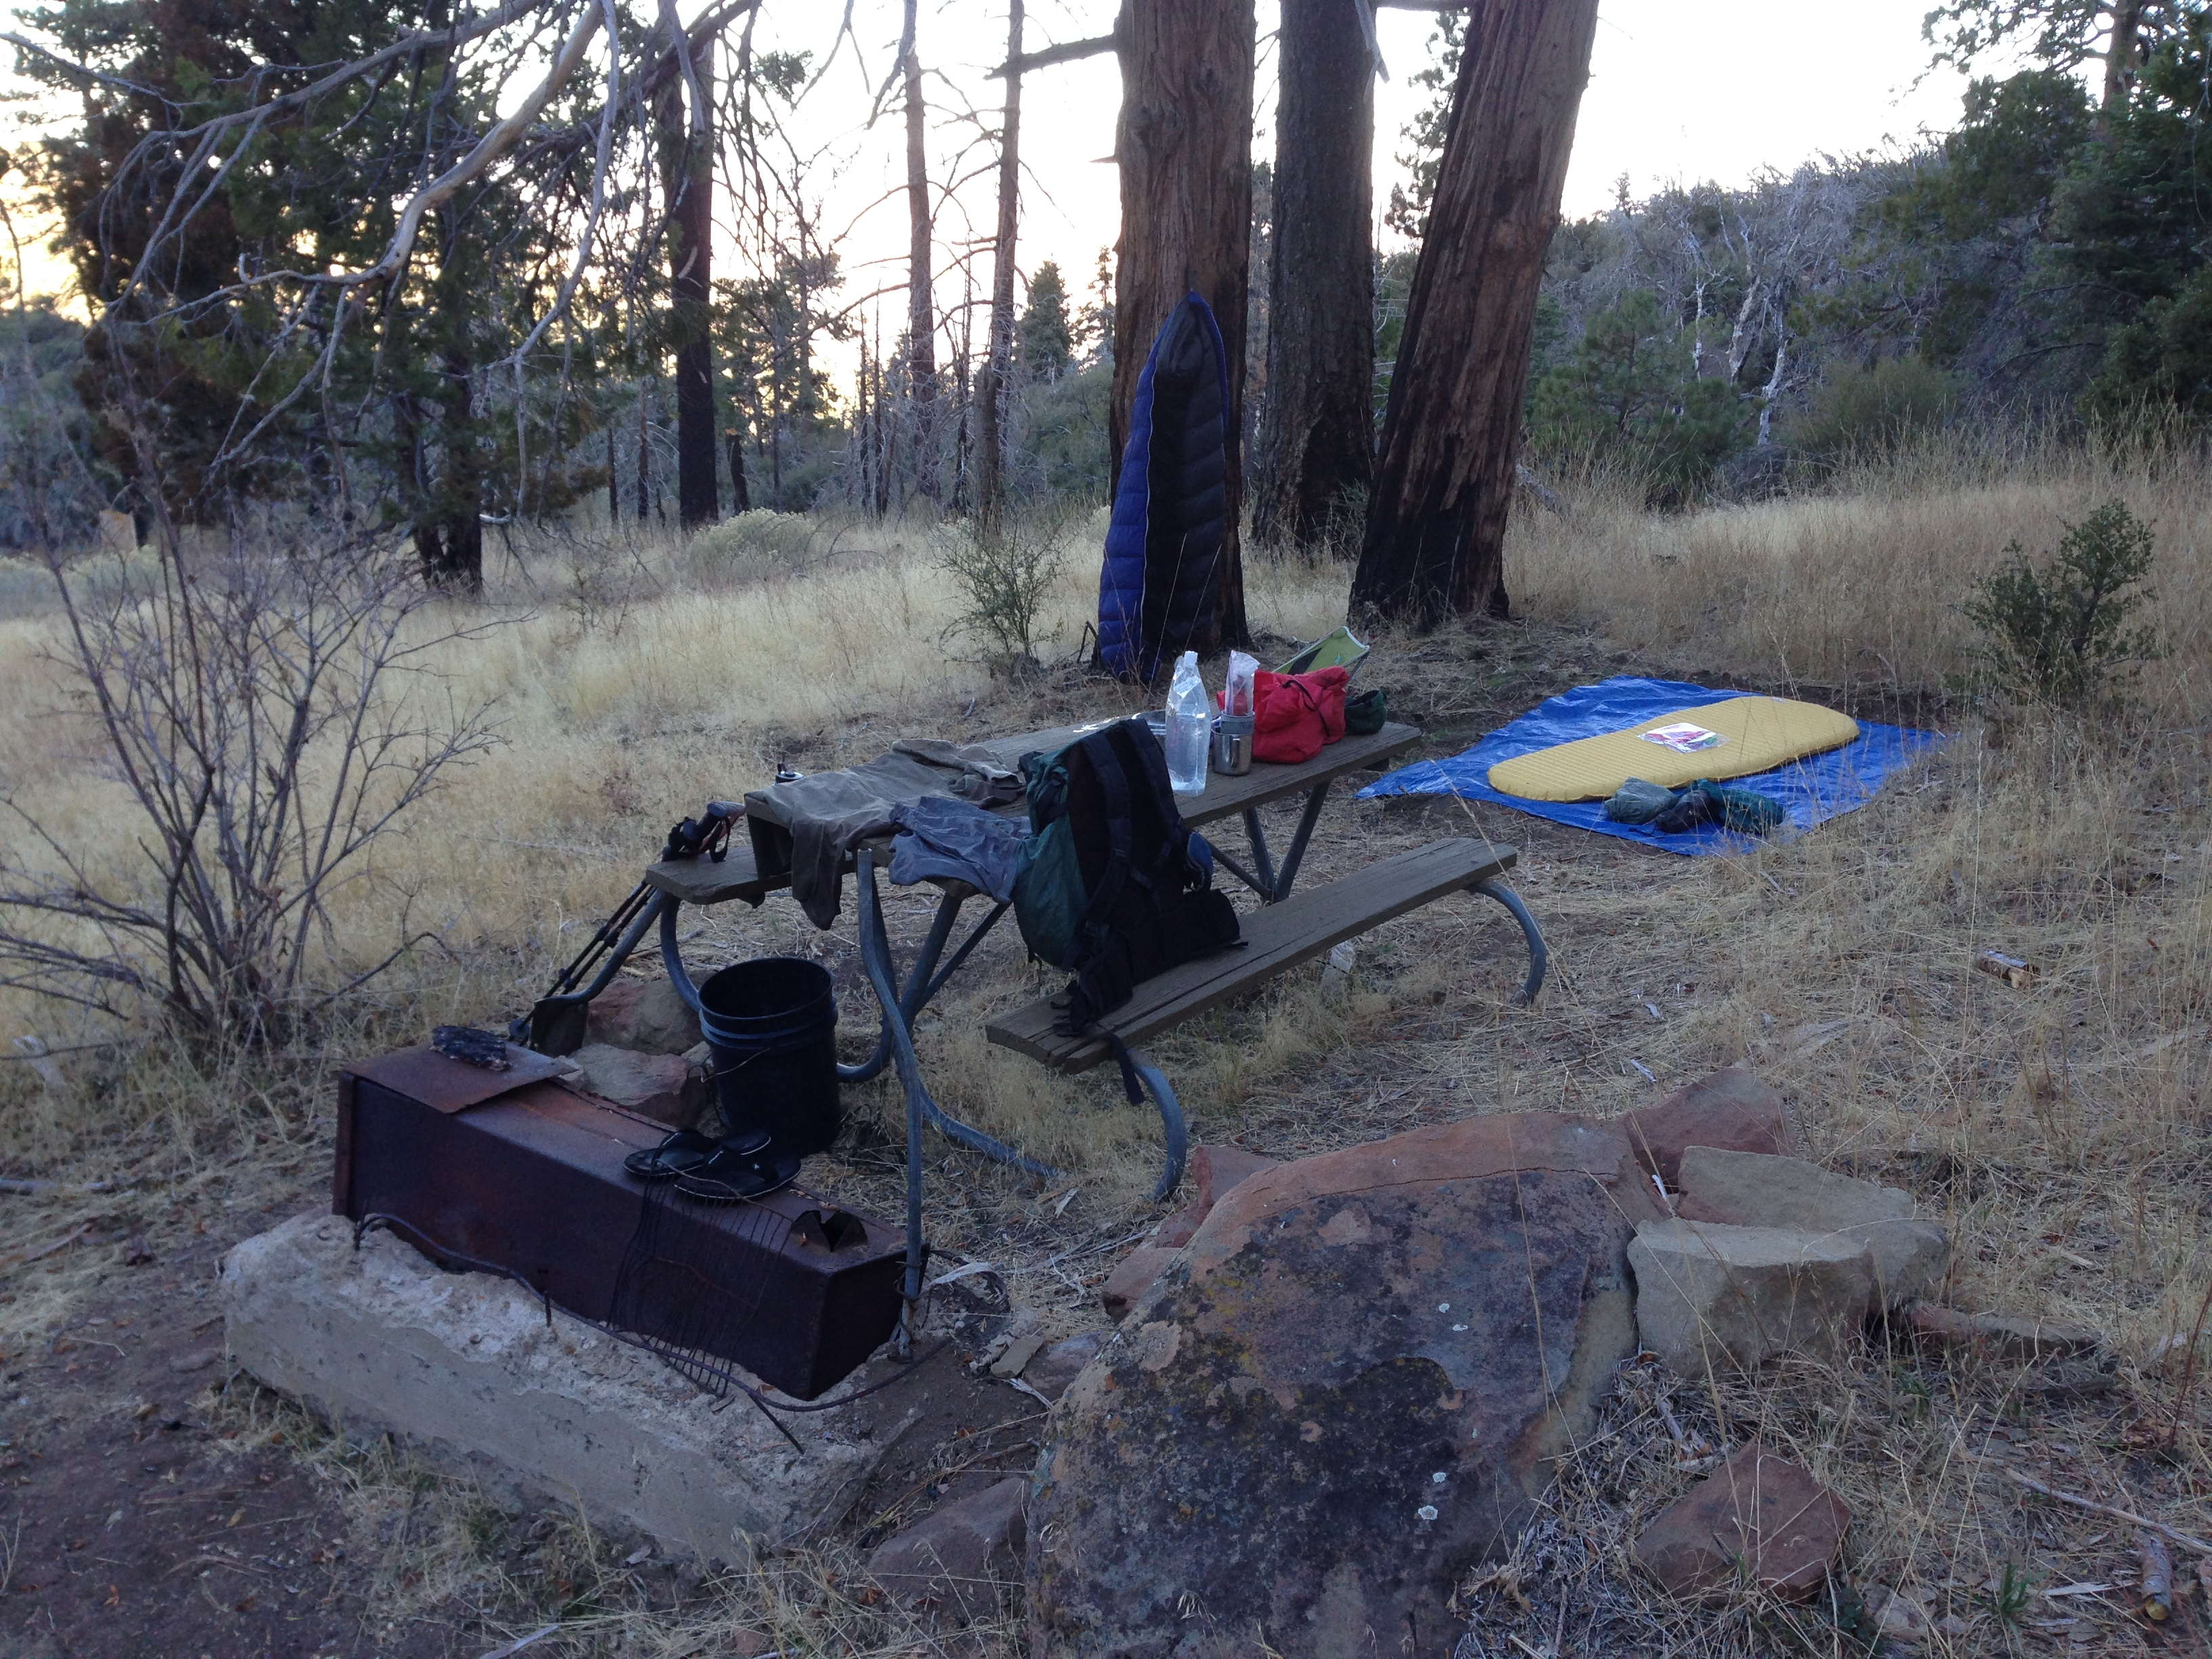 Big Pine Camp - Los Padres | Backpacking, Camping, MTB, OHV